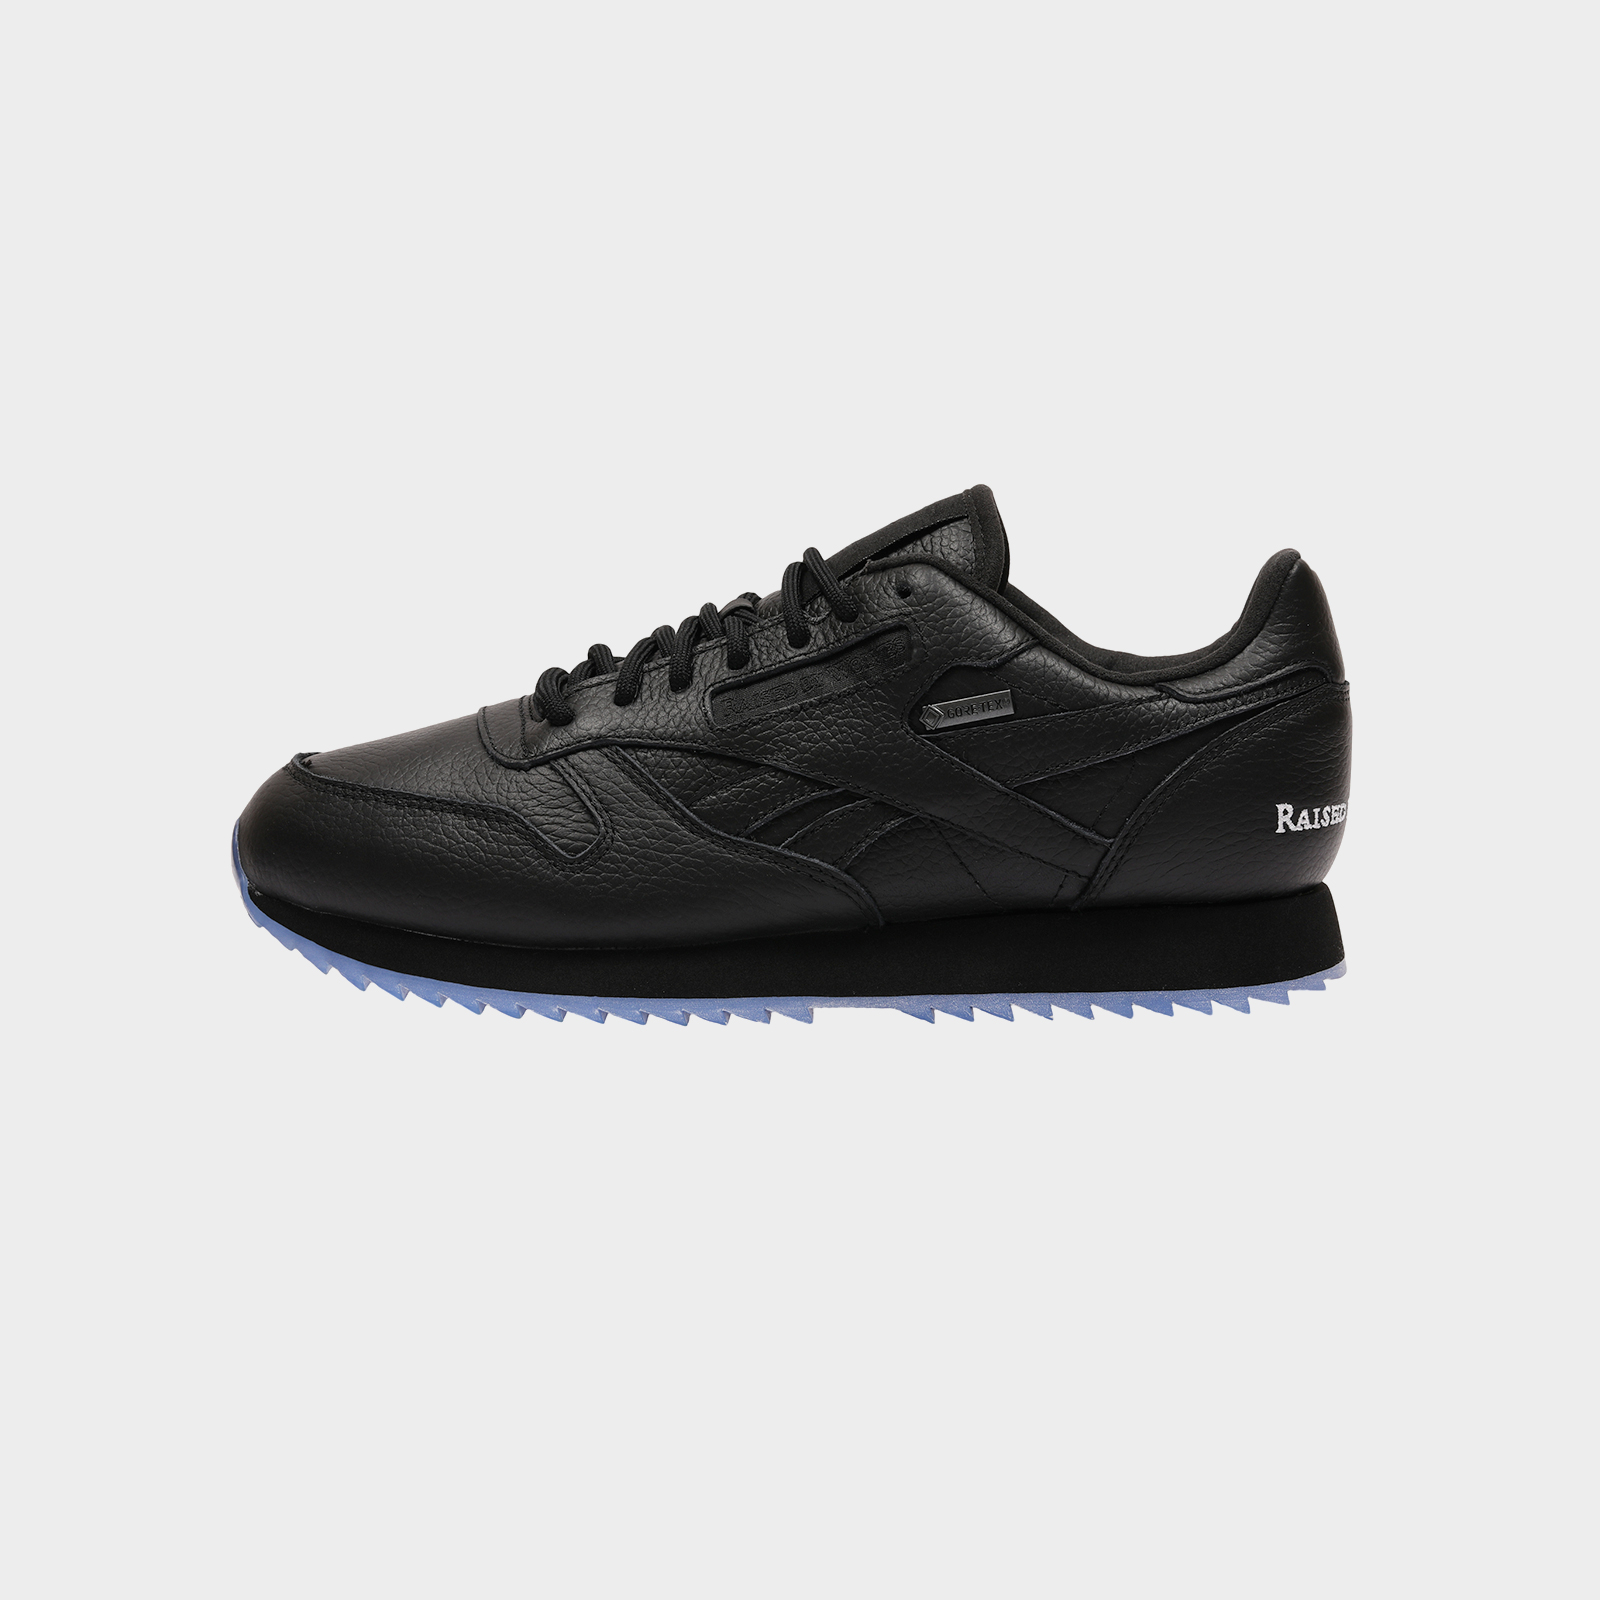 2a8a1290763 Reebok Classic Leather Ripple GORE-TEX x Raised by Wolves - Cn0253 ...